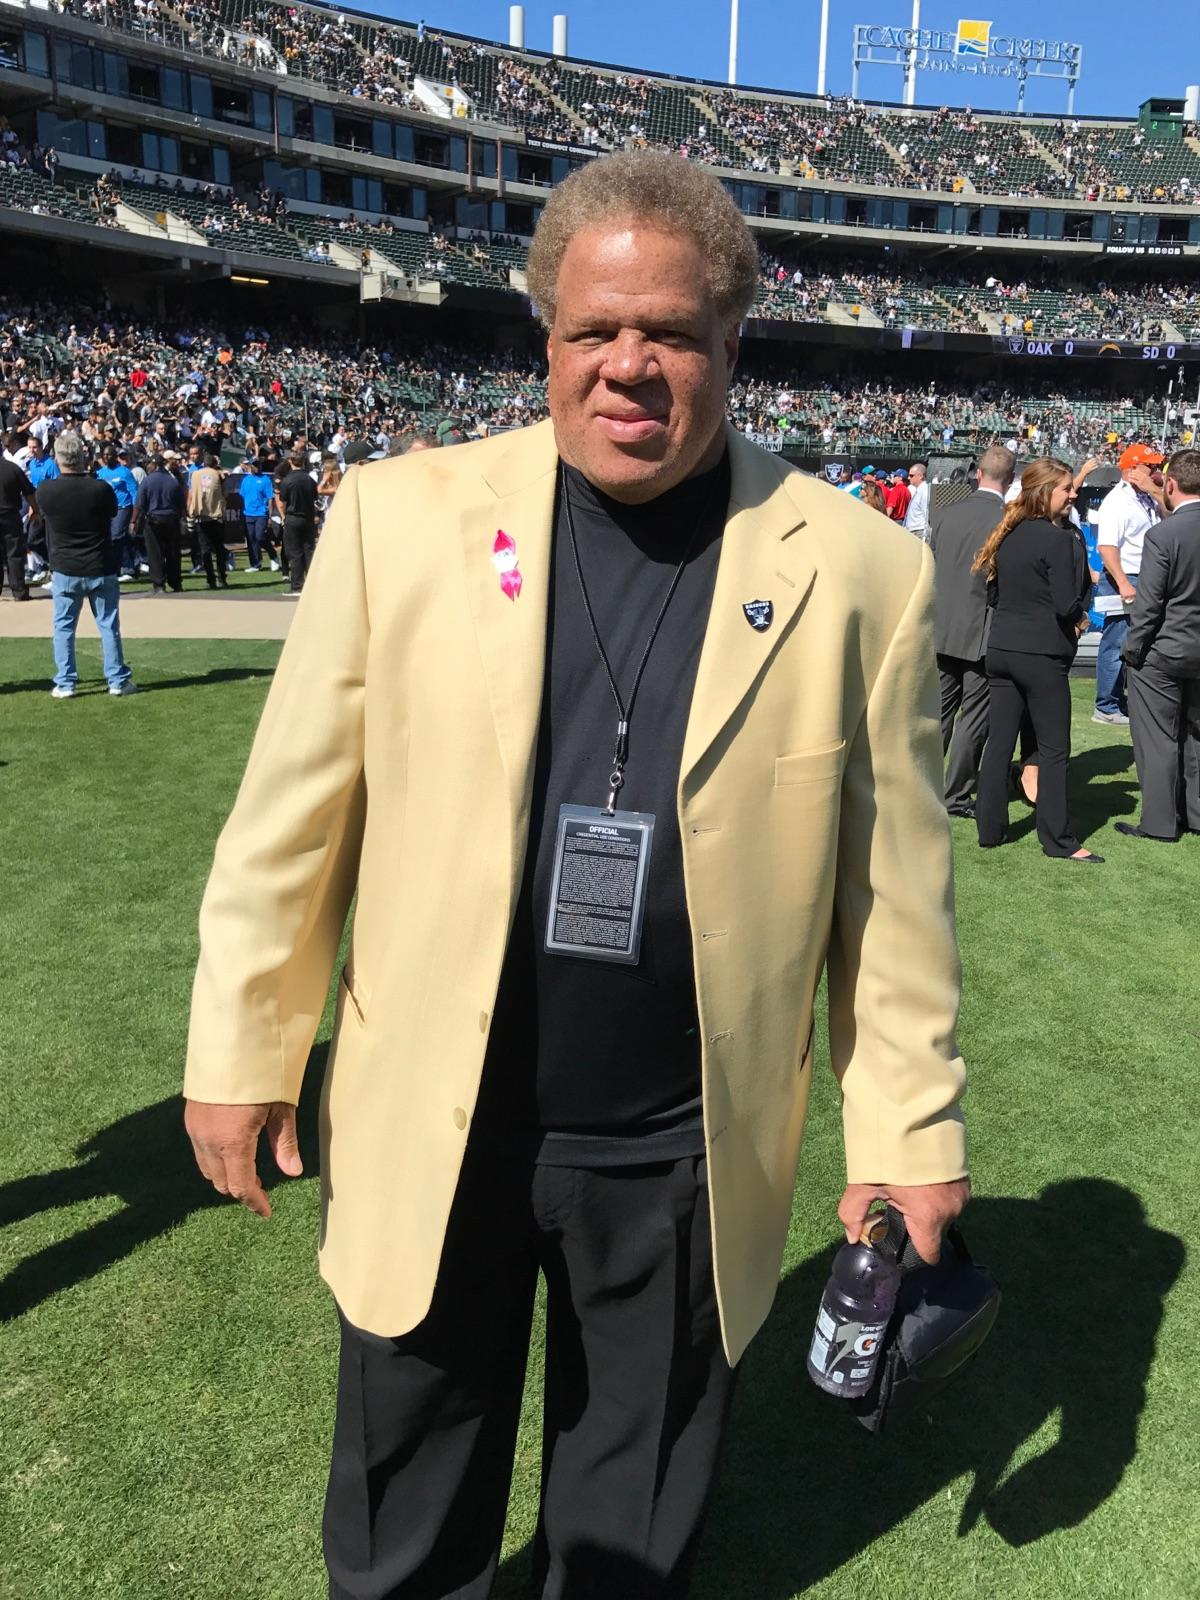 Reggie McKenzie, the General Manager for the Oakland Raiders, has a lot to smile about. His Bay Area team beat the San Diego Chargers 34-31 on Oct. 9 and improved to 4-1. (OBSERVER photo by Simeon Gant)